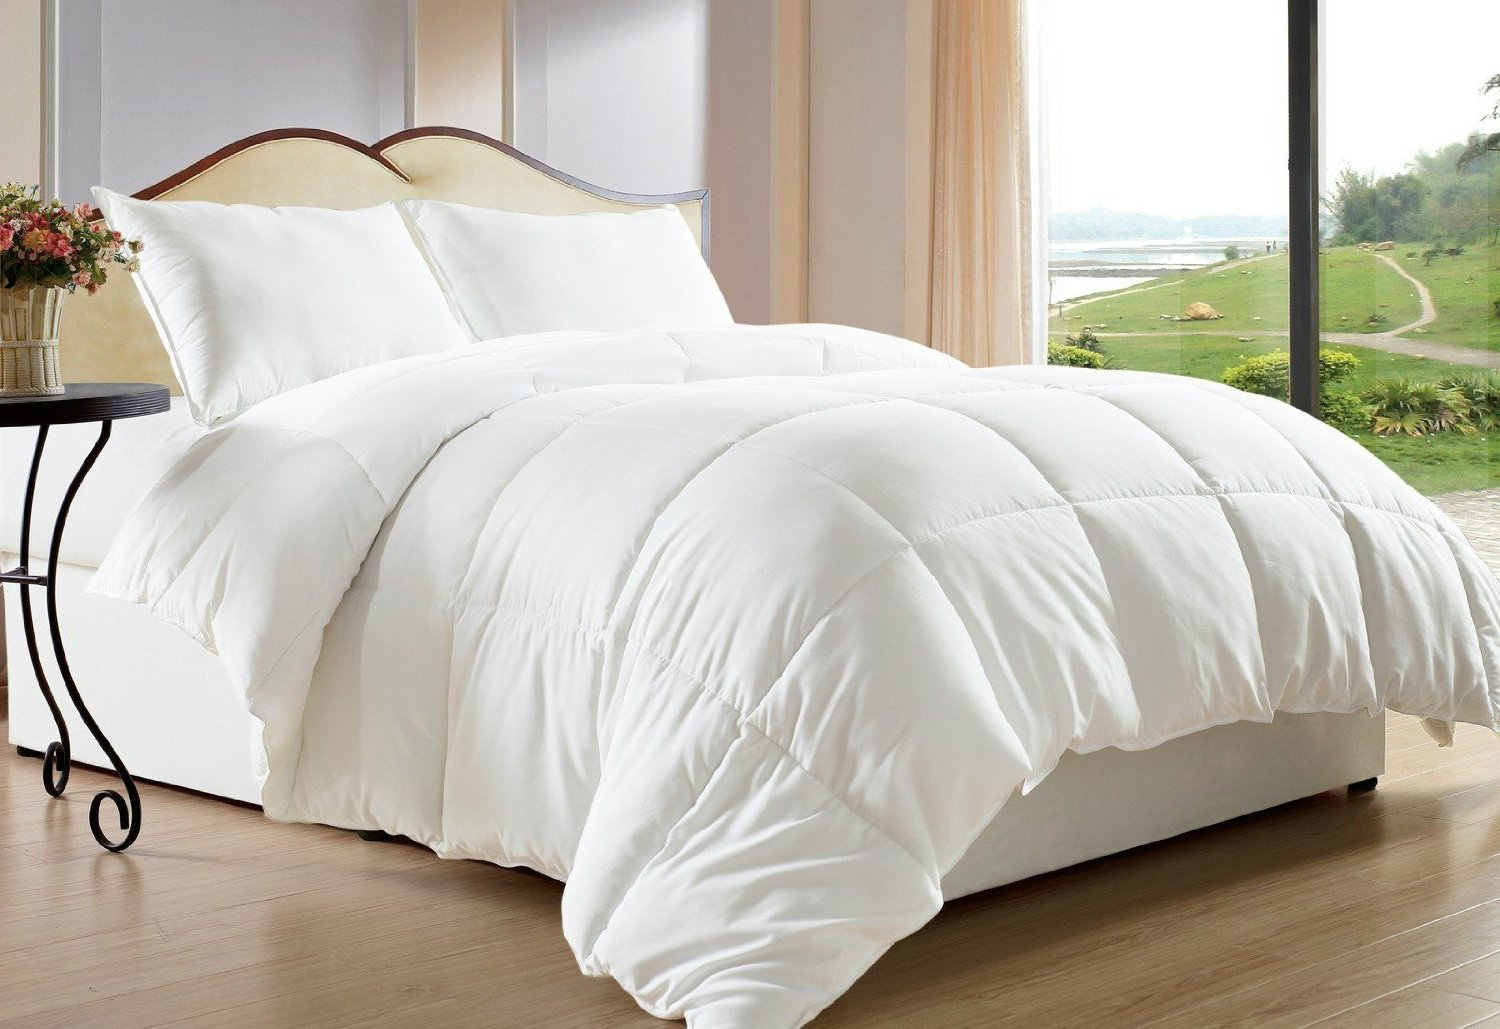 Twin Size Comforter Goose Down Duvet – White, Hypoallergenic Alternative, Box Stitched, Protects Against Dust Mites And Allergens, Washable, By Clara Clark